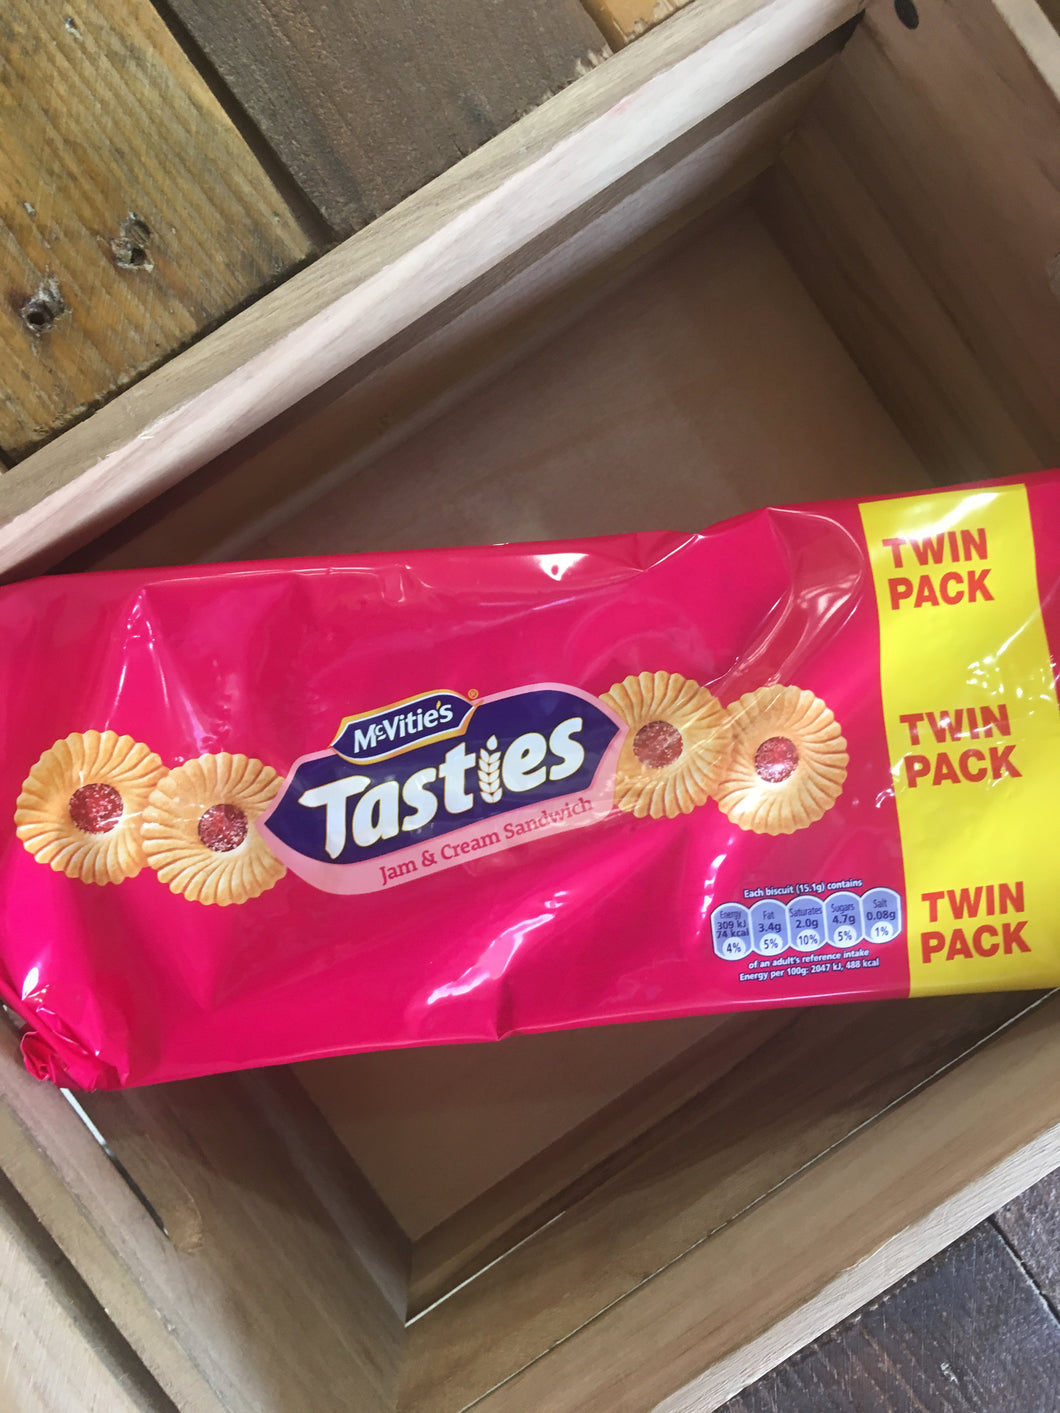 McVities Tasties Jam & Cream Sandwich Twin Pack 2x150g